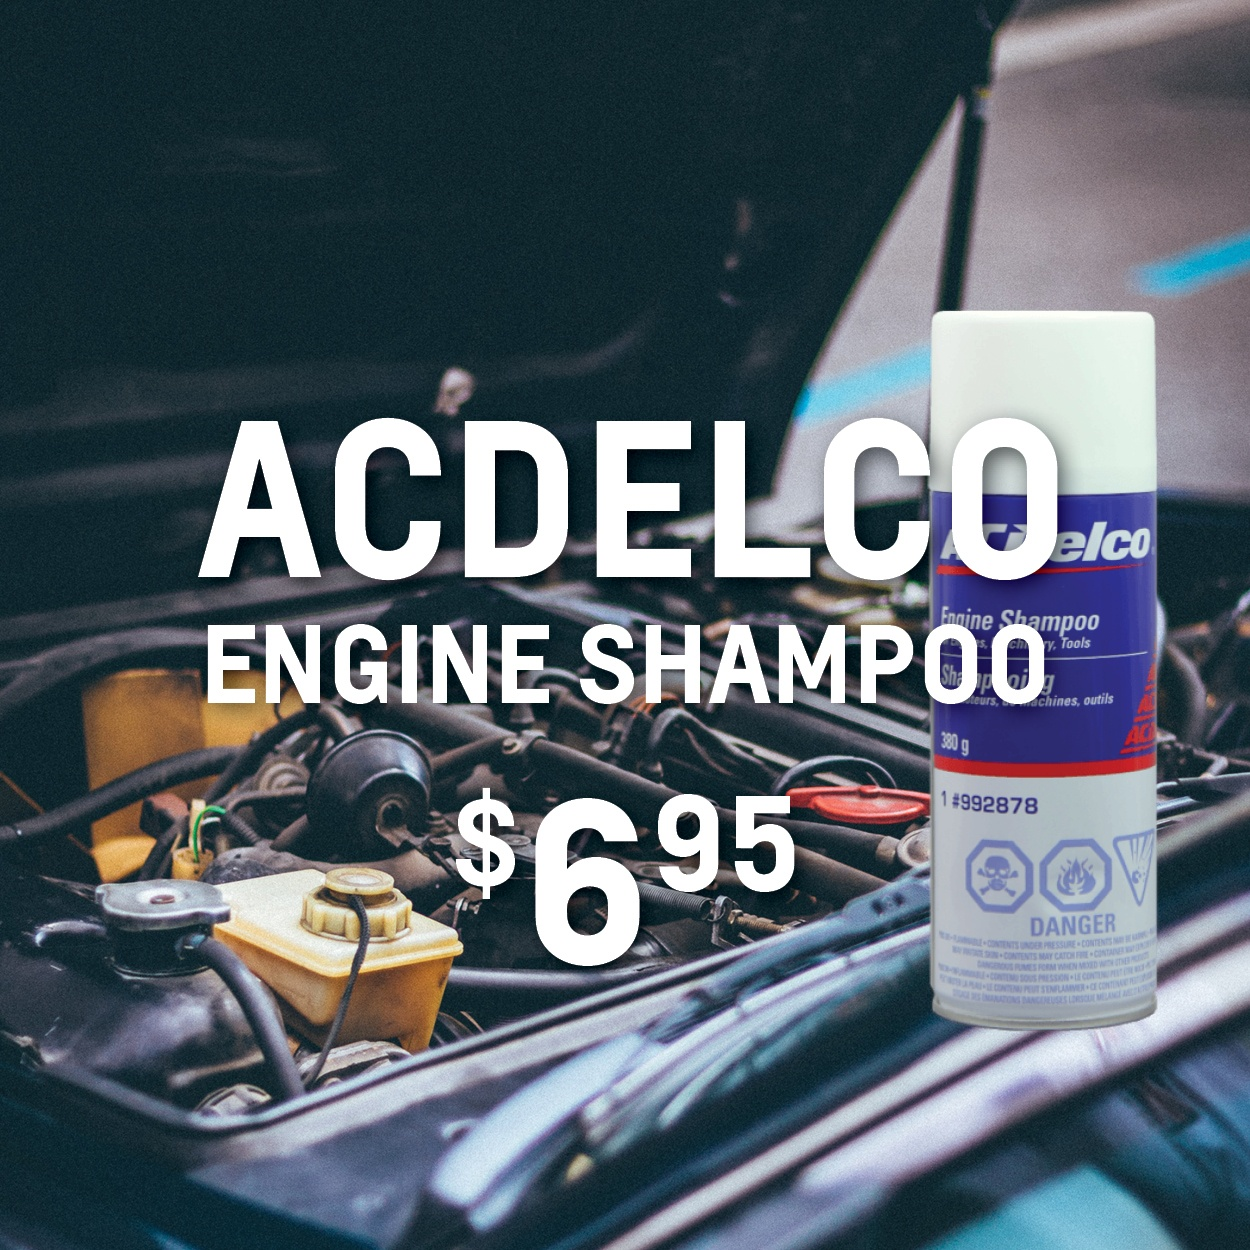 ACDelco Engine Shampoo